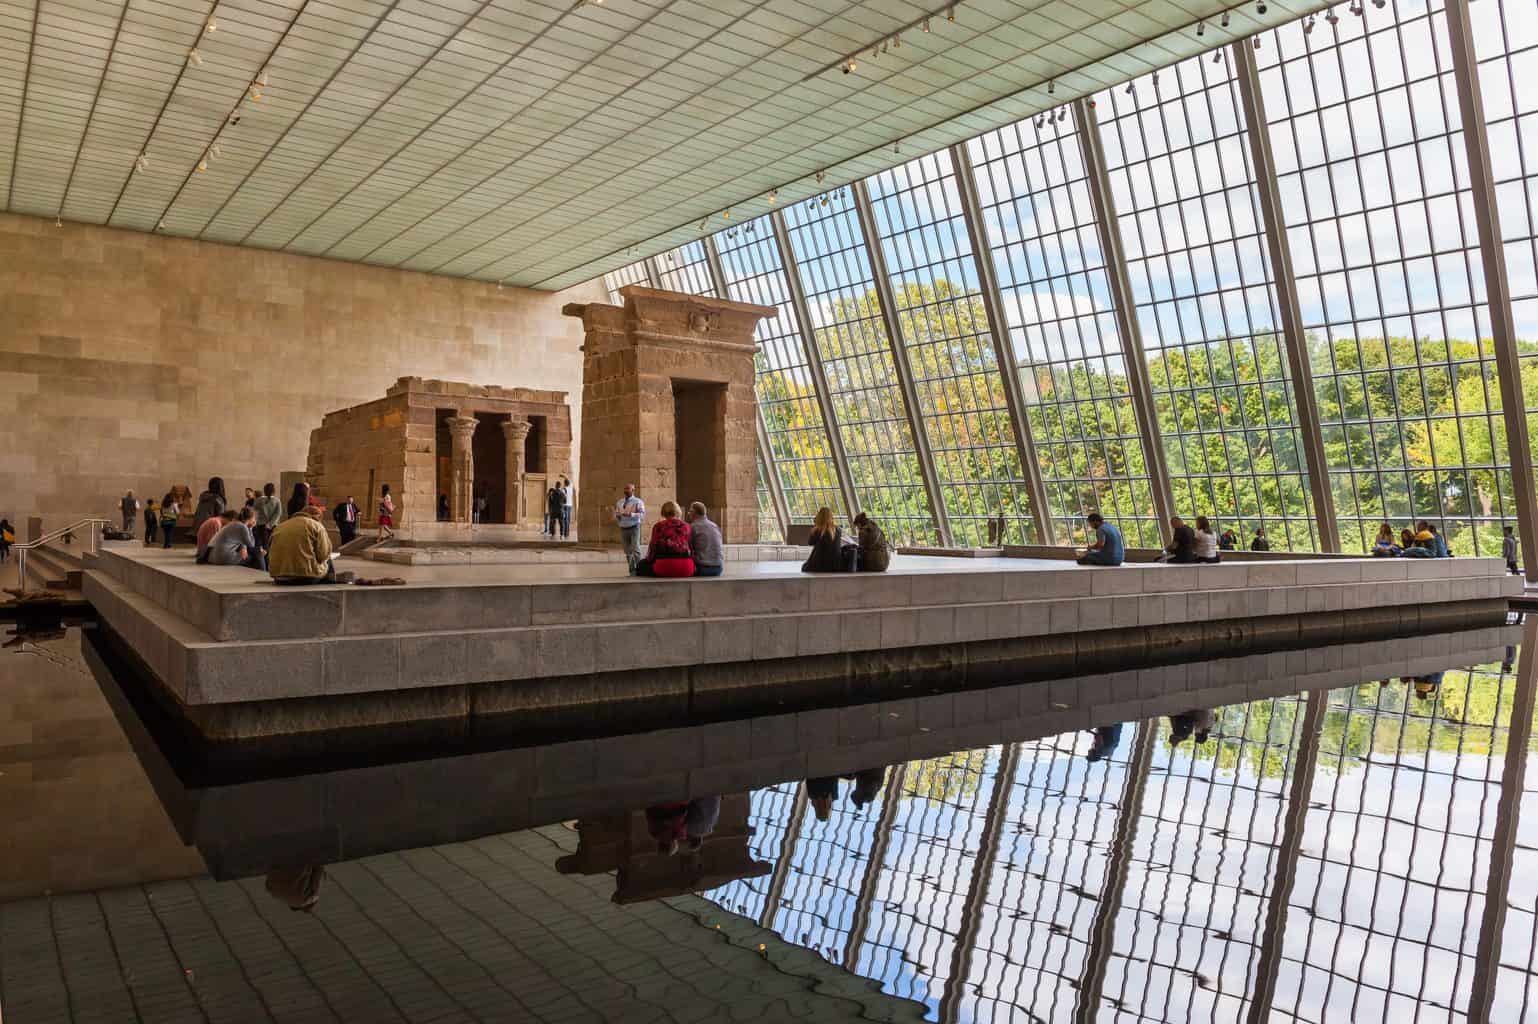 Visit iconic places like the Temple of Dendur in the Metropolitan Museum of Art in NYC.